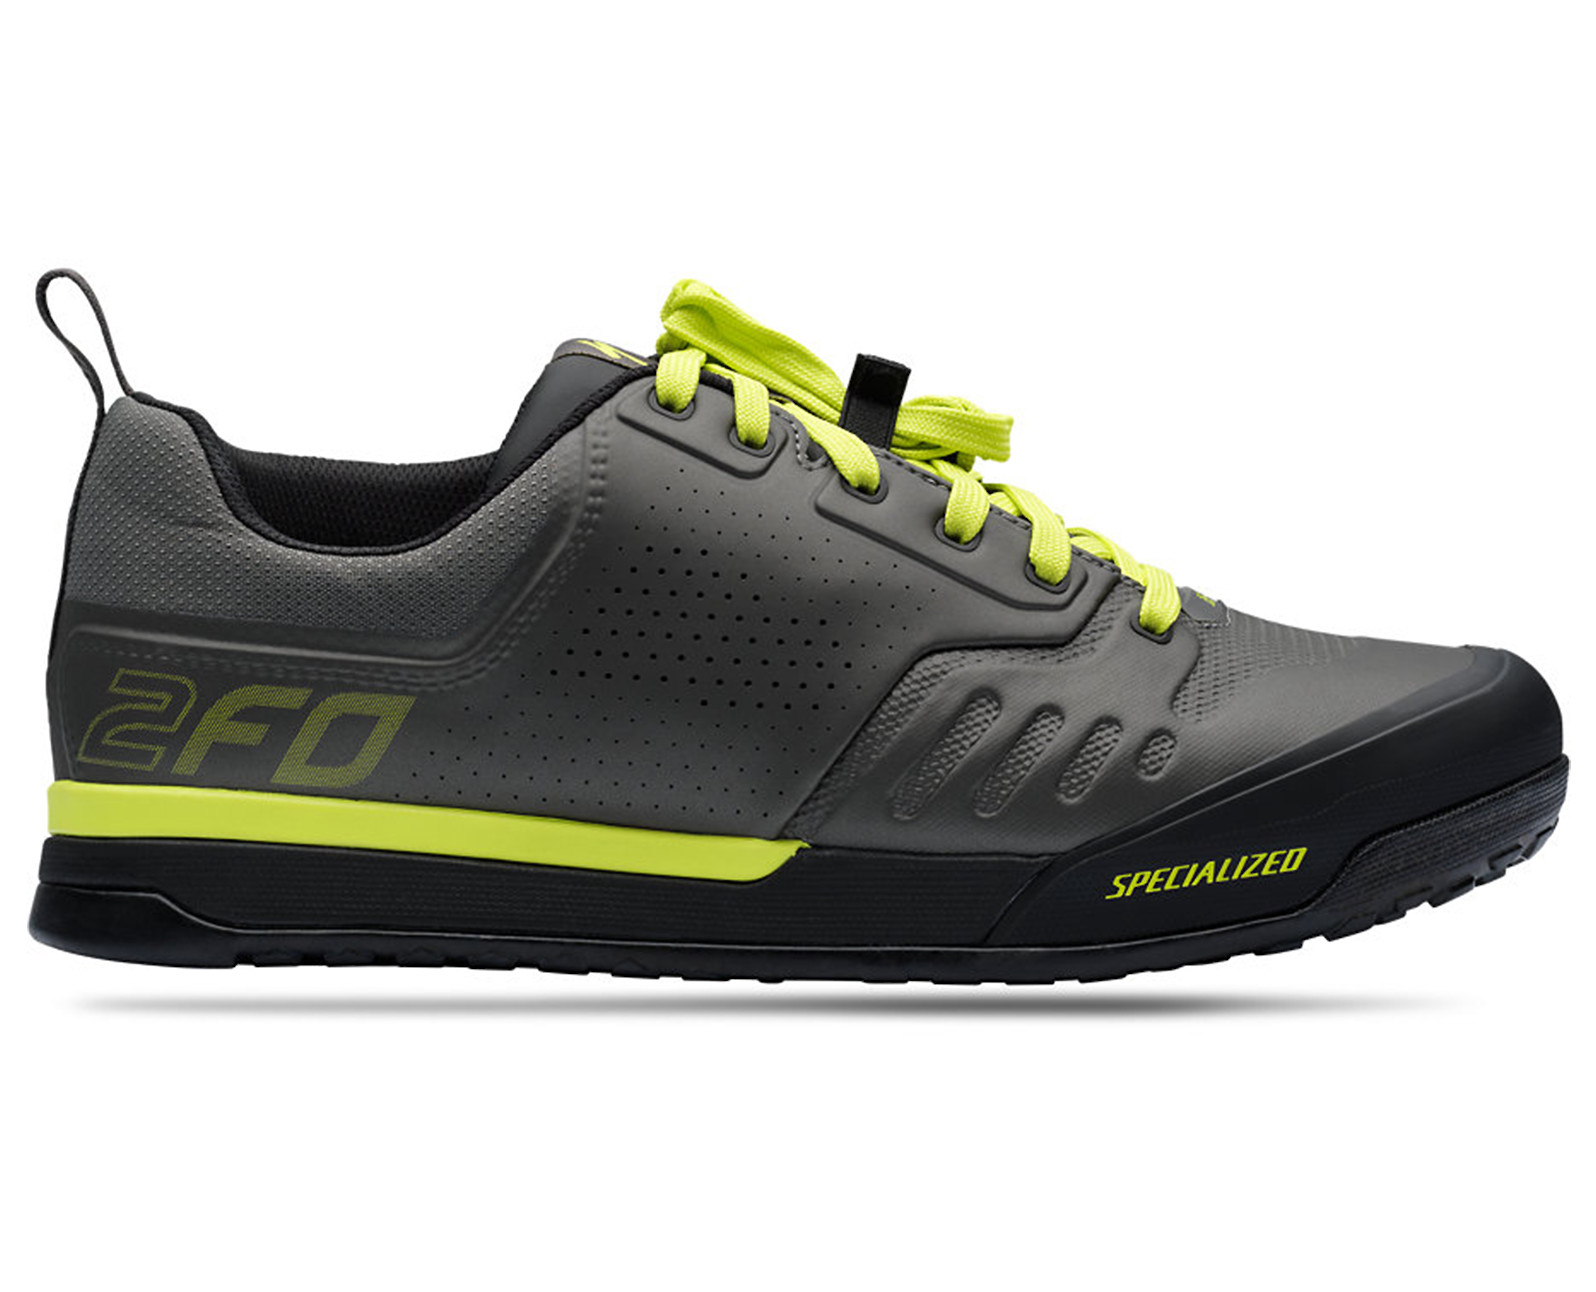 Specialized 2FO Flat 2.0 Shoe (2019 Charcoal/Ion)